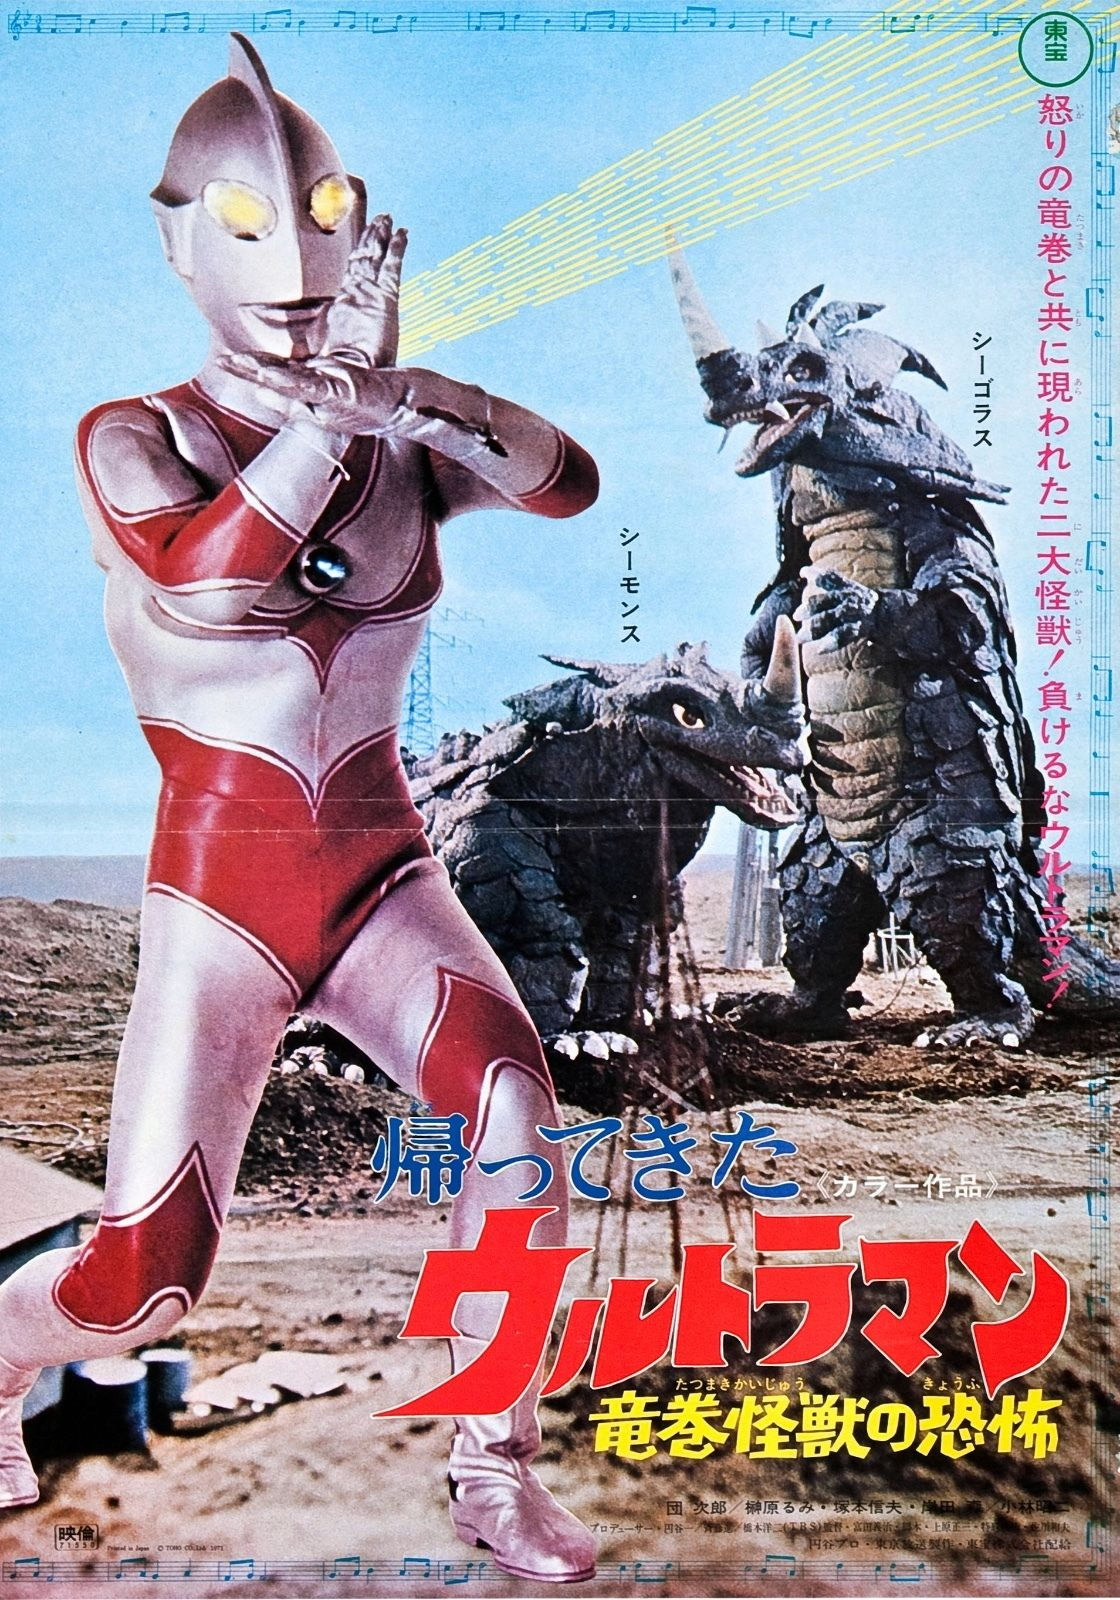 72819-Return-of-Ultraman-TV-Series-1971-1972-Sci-Fi-FRAMED-CANVAS-PRINT-Toile